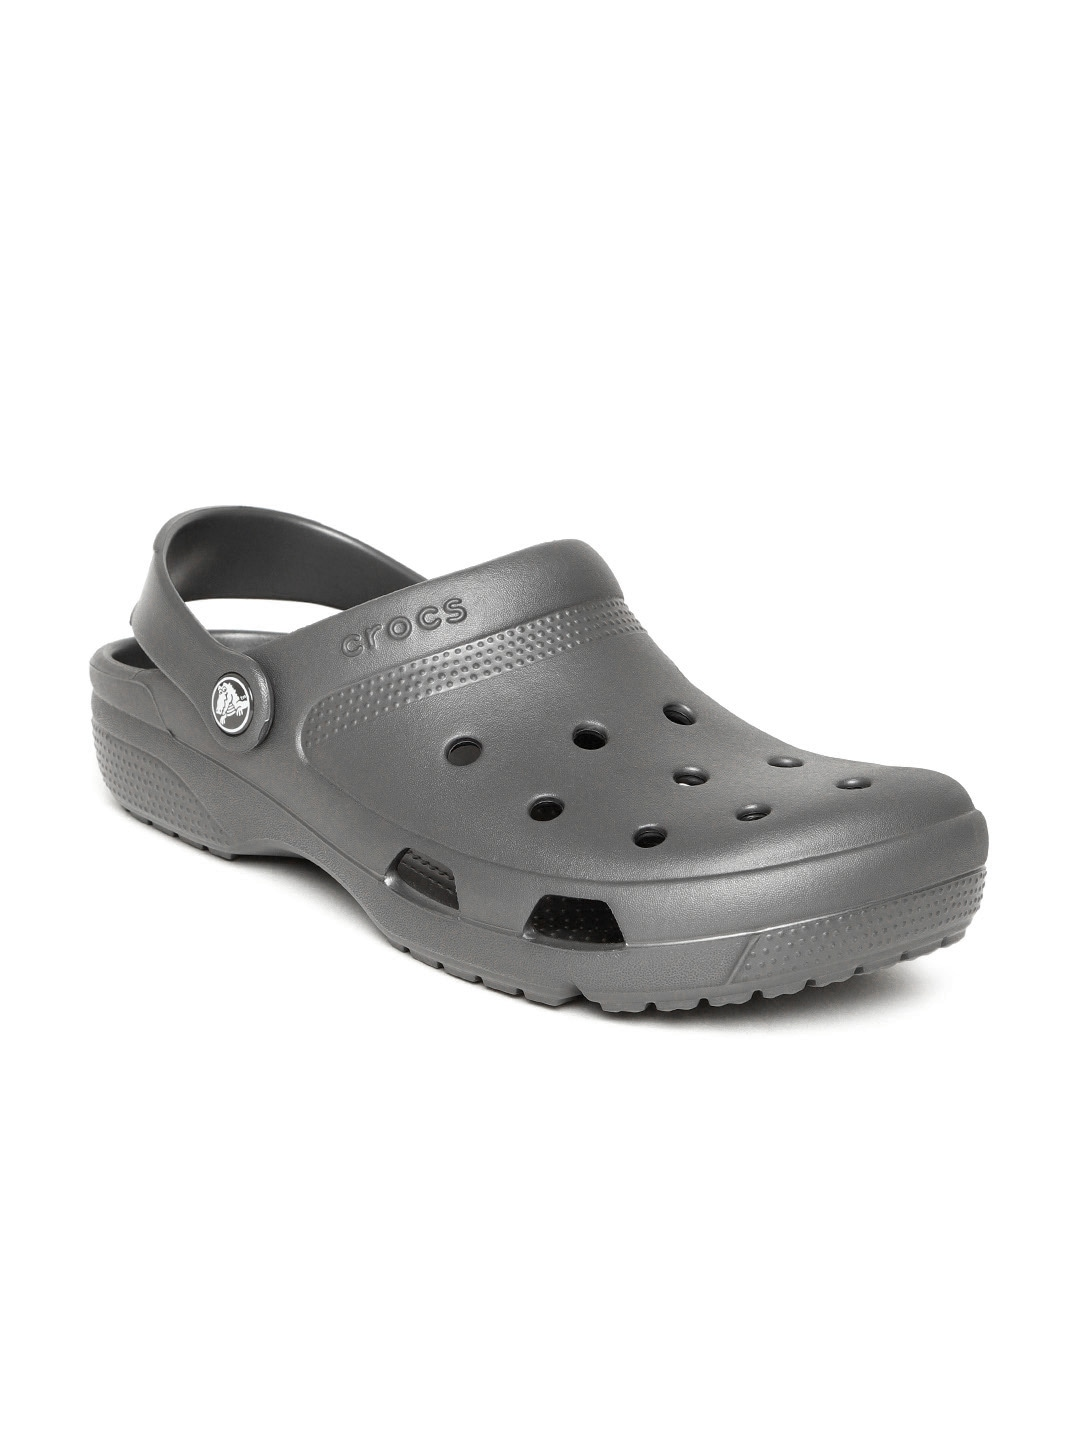 e529641518726 Crocs Shoes Online - Buy Crocs Flip Flops   Sandals Online in India - Myntra